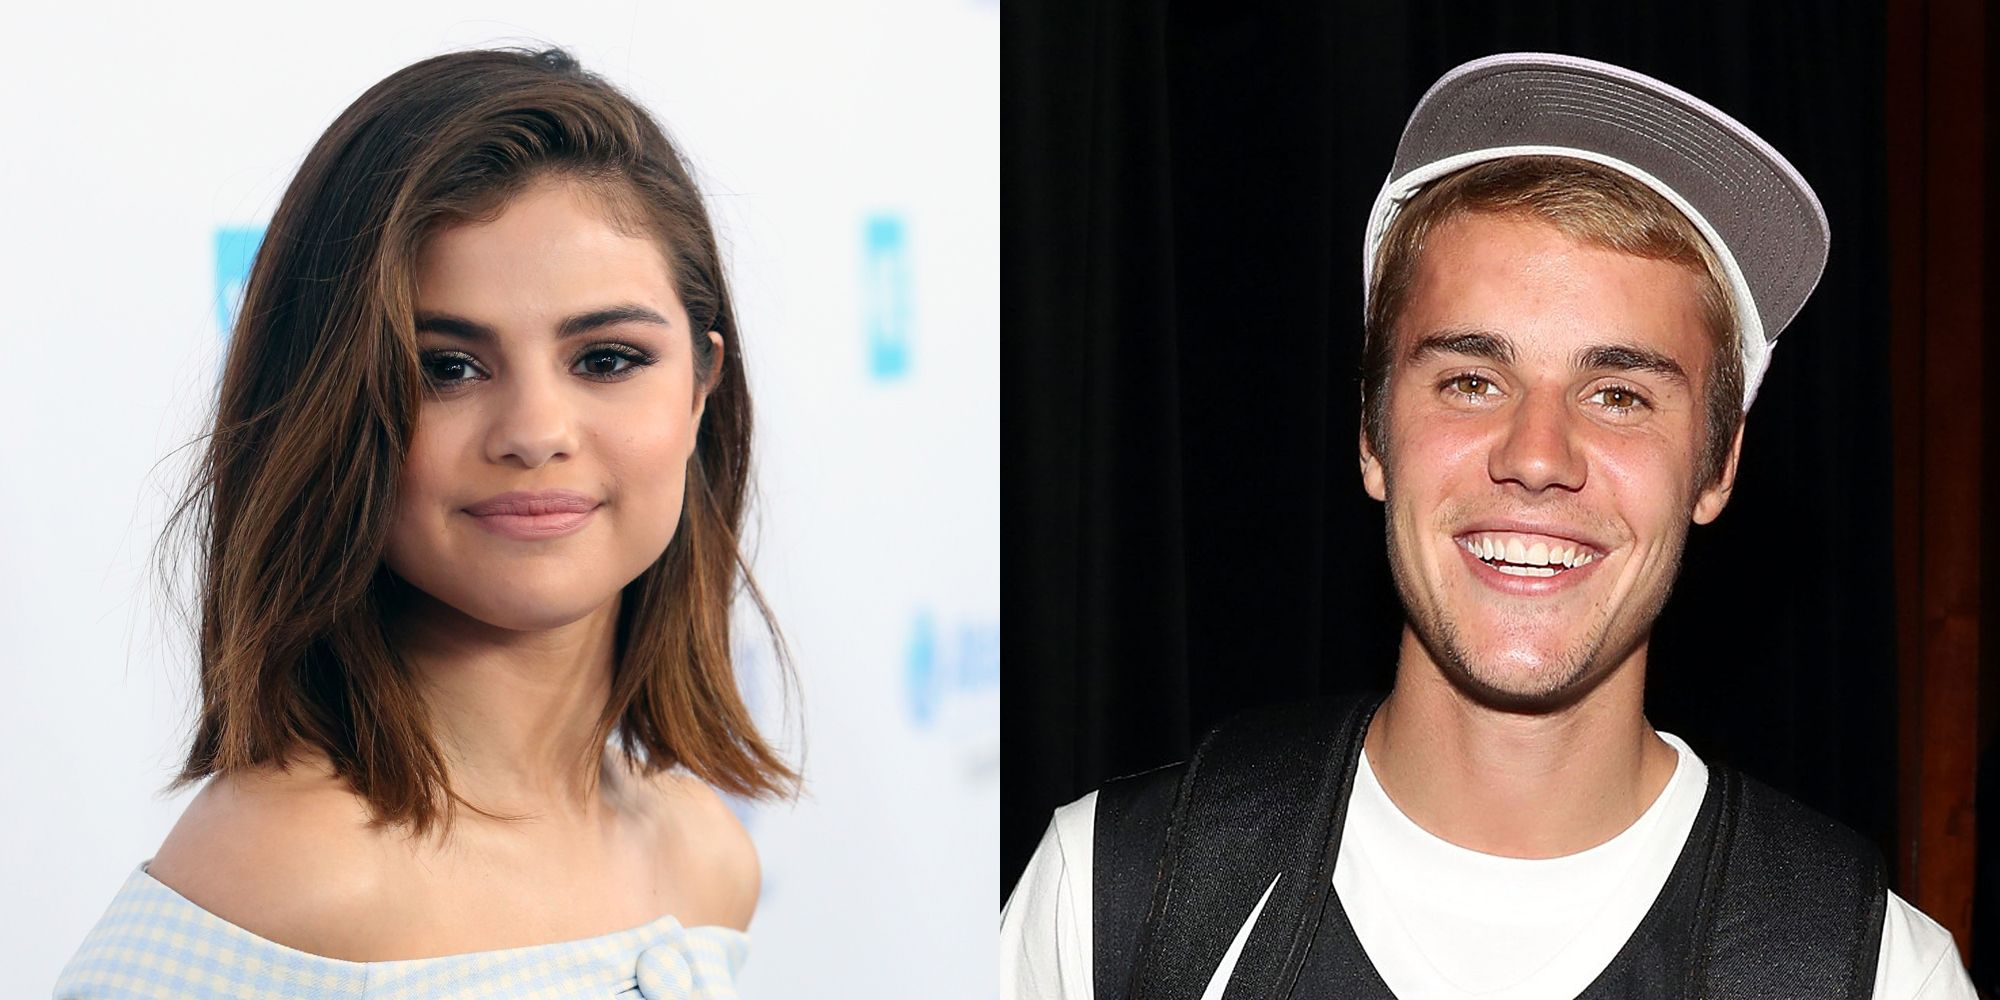 These New Photos of Selena Gomez and Justin Bieber Hugging Are the Sweetest